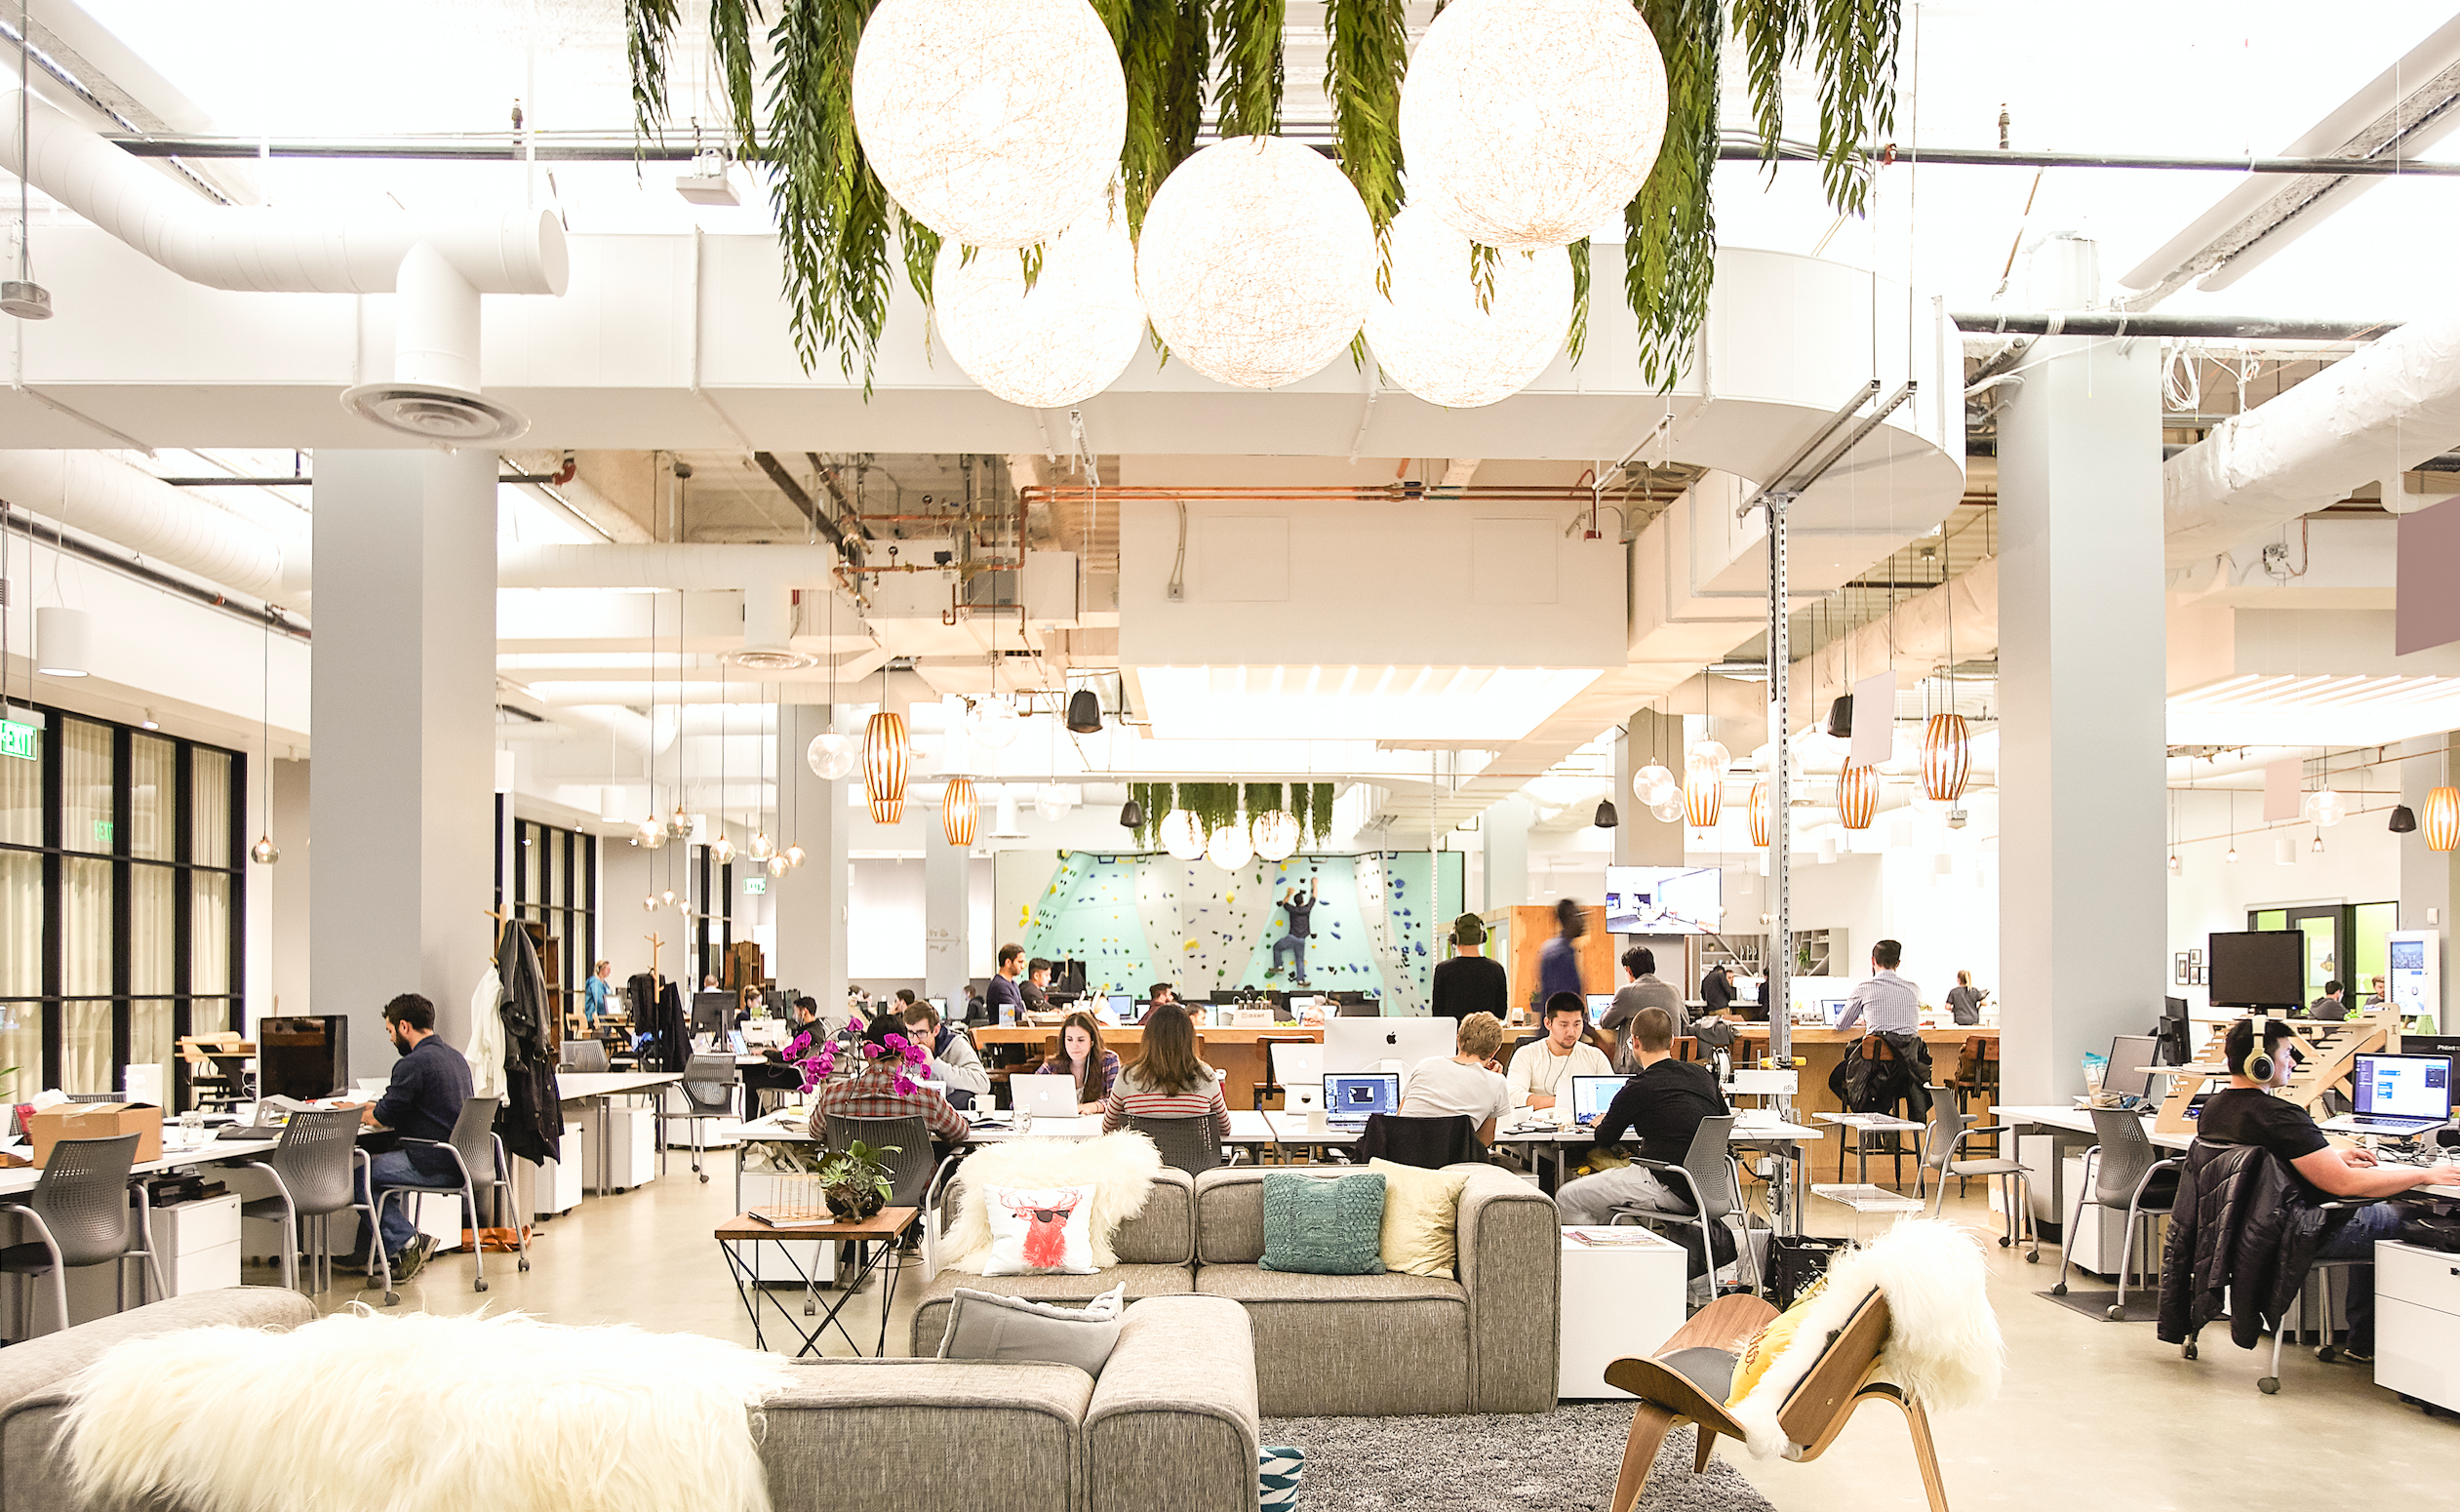 Freelancing? Why Coworking May Work for You